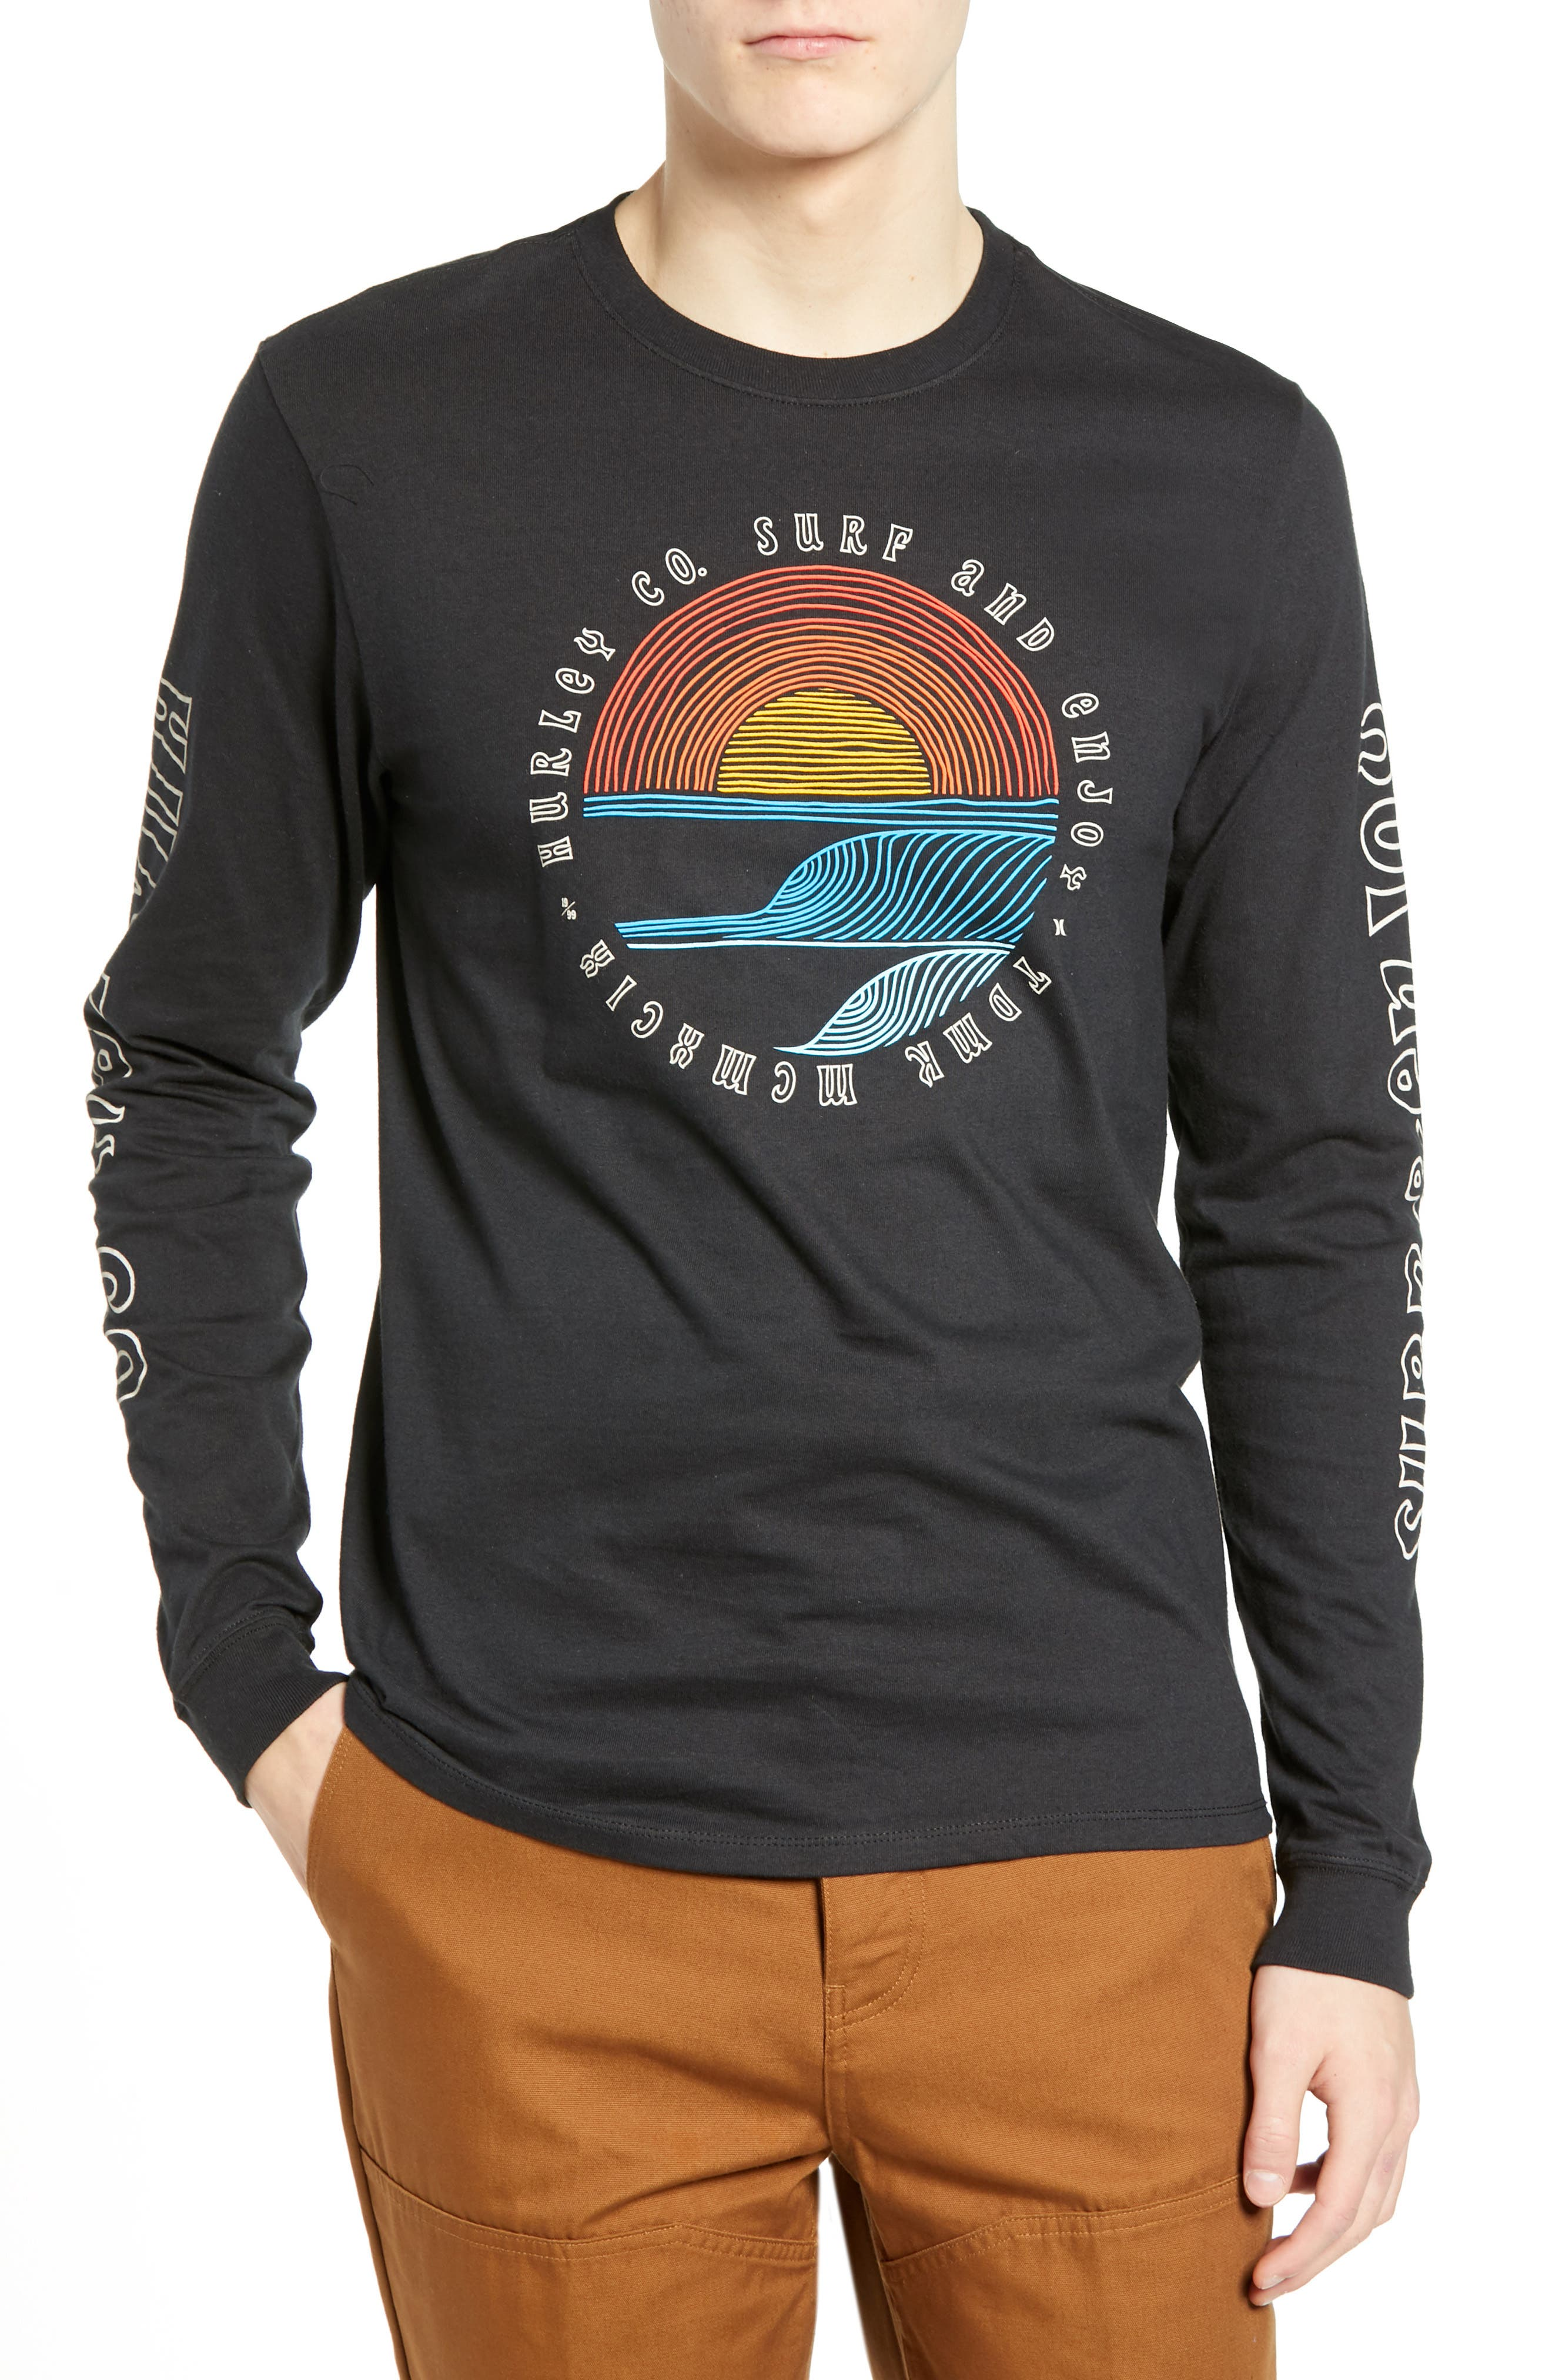 833a7cb68b137 Hurley Core Pennant Graphic T-Shirt